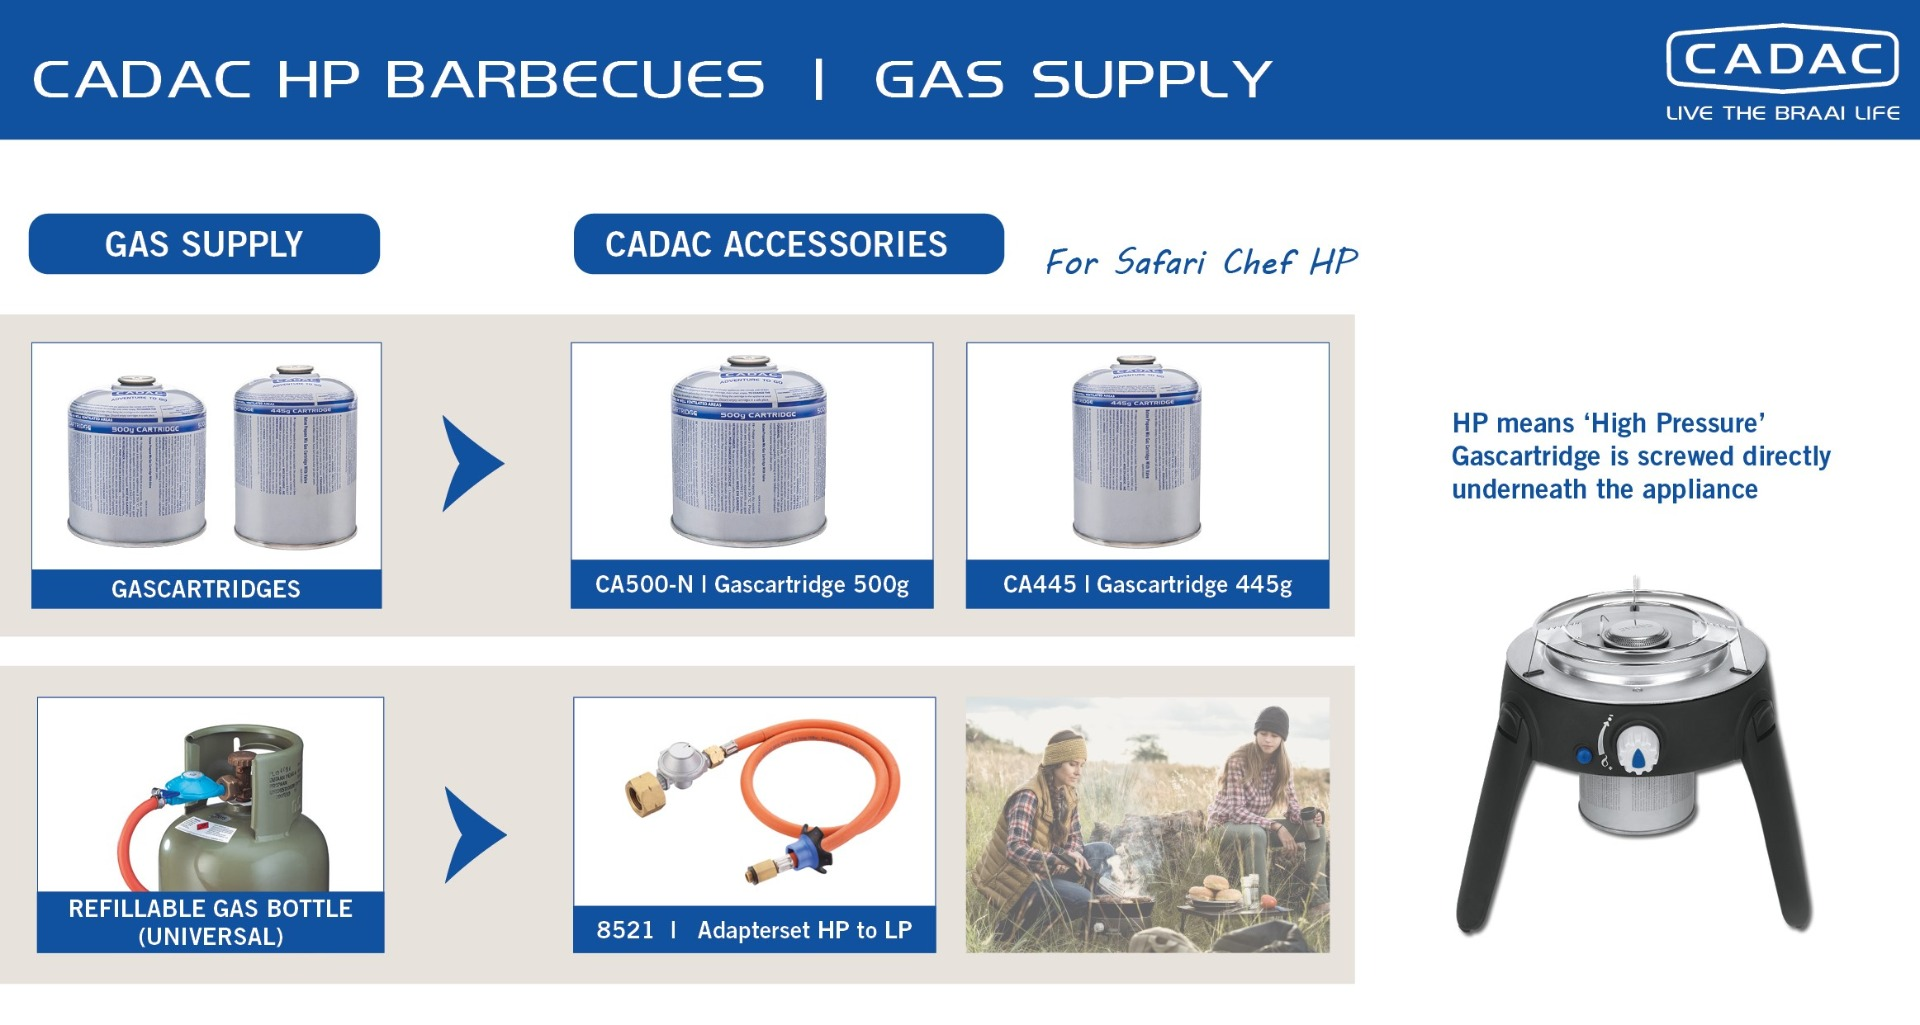 HP devices | CADAC gasbarbecues